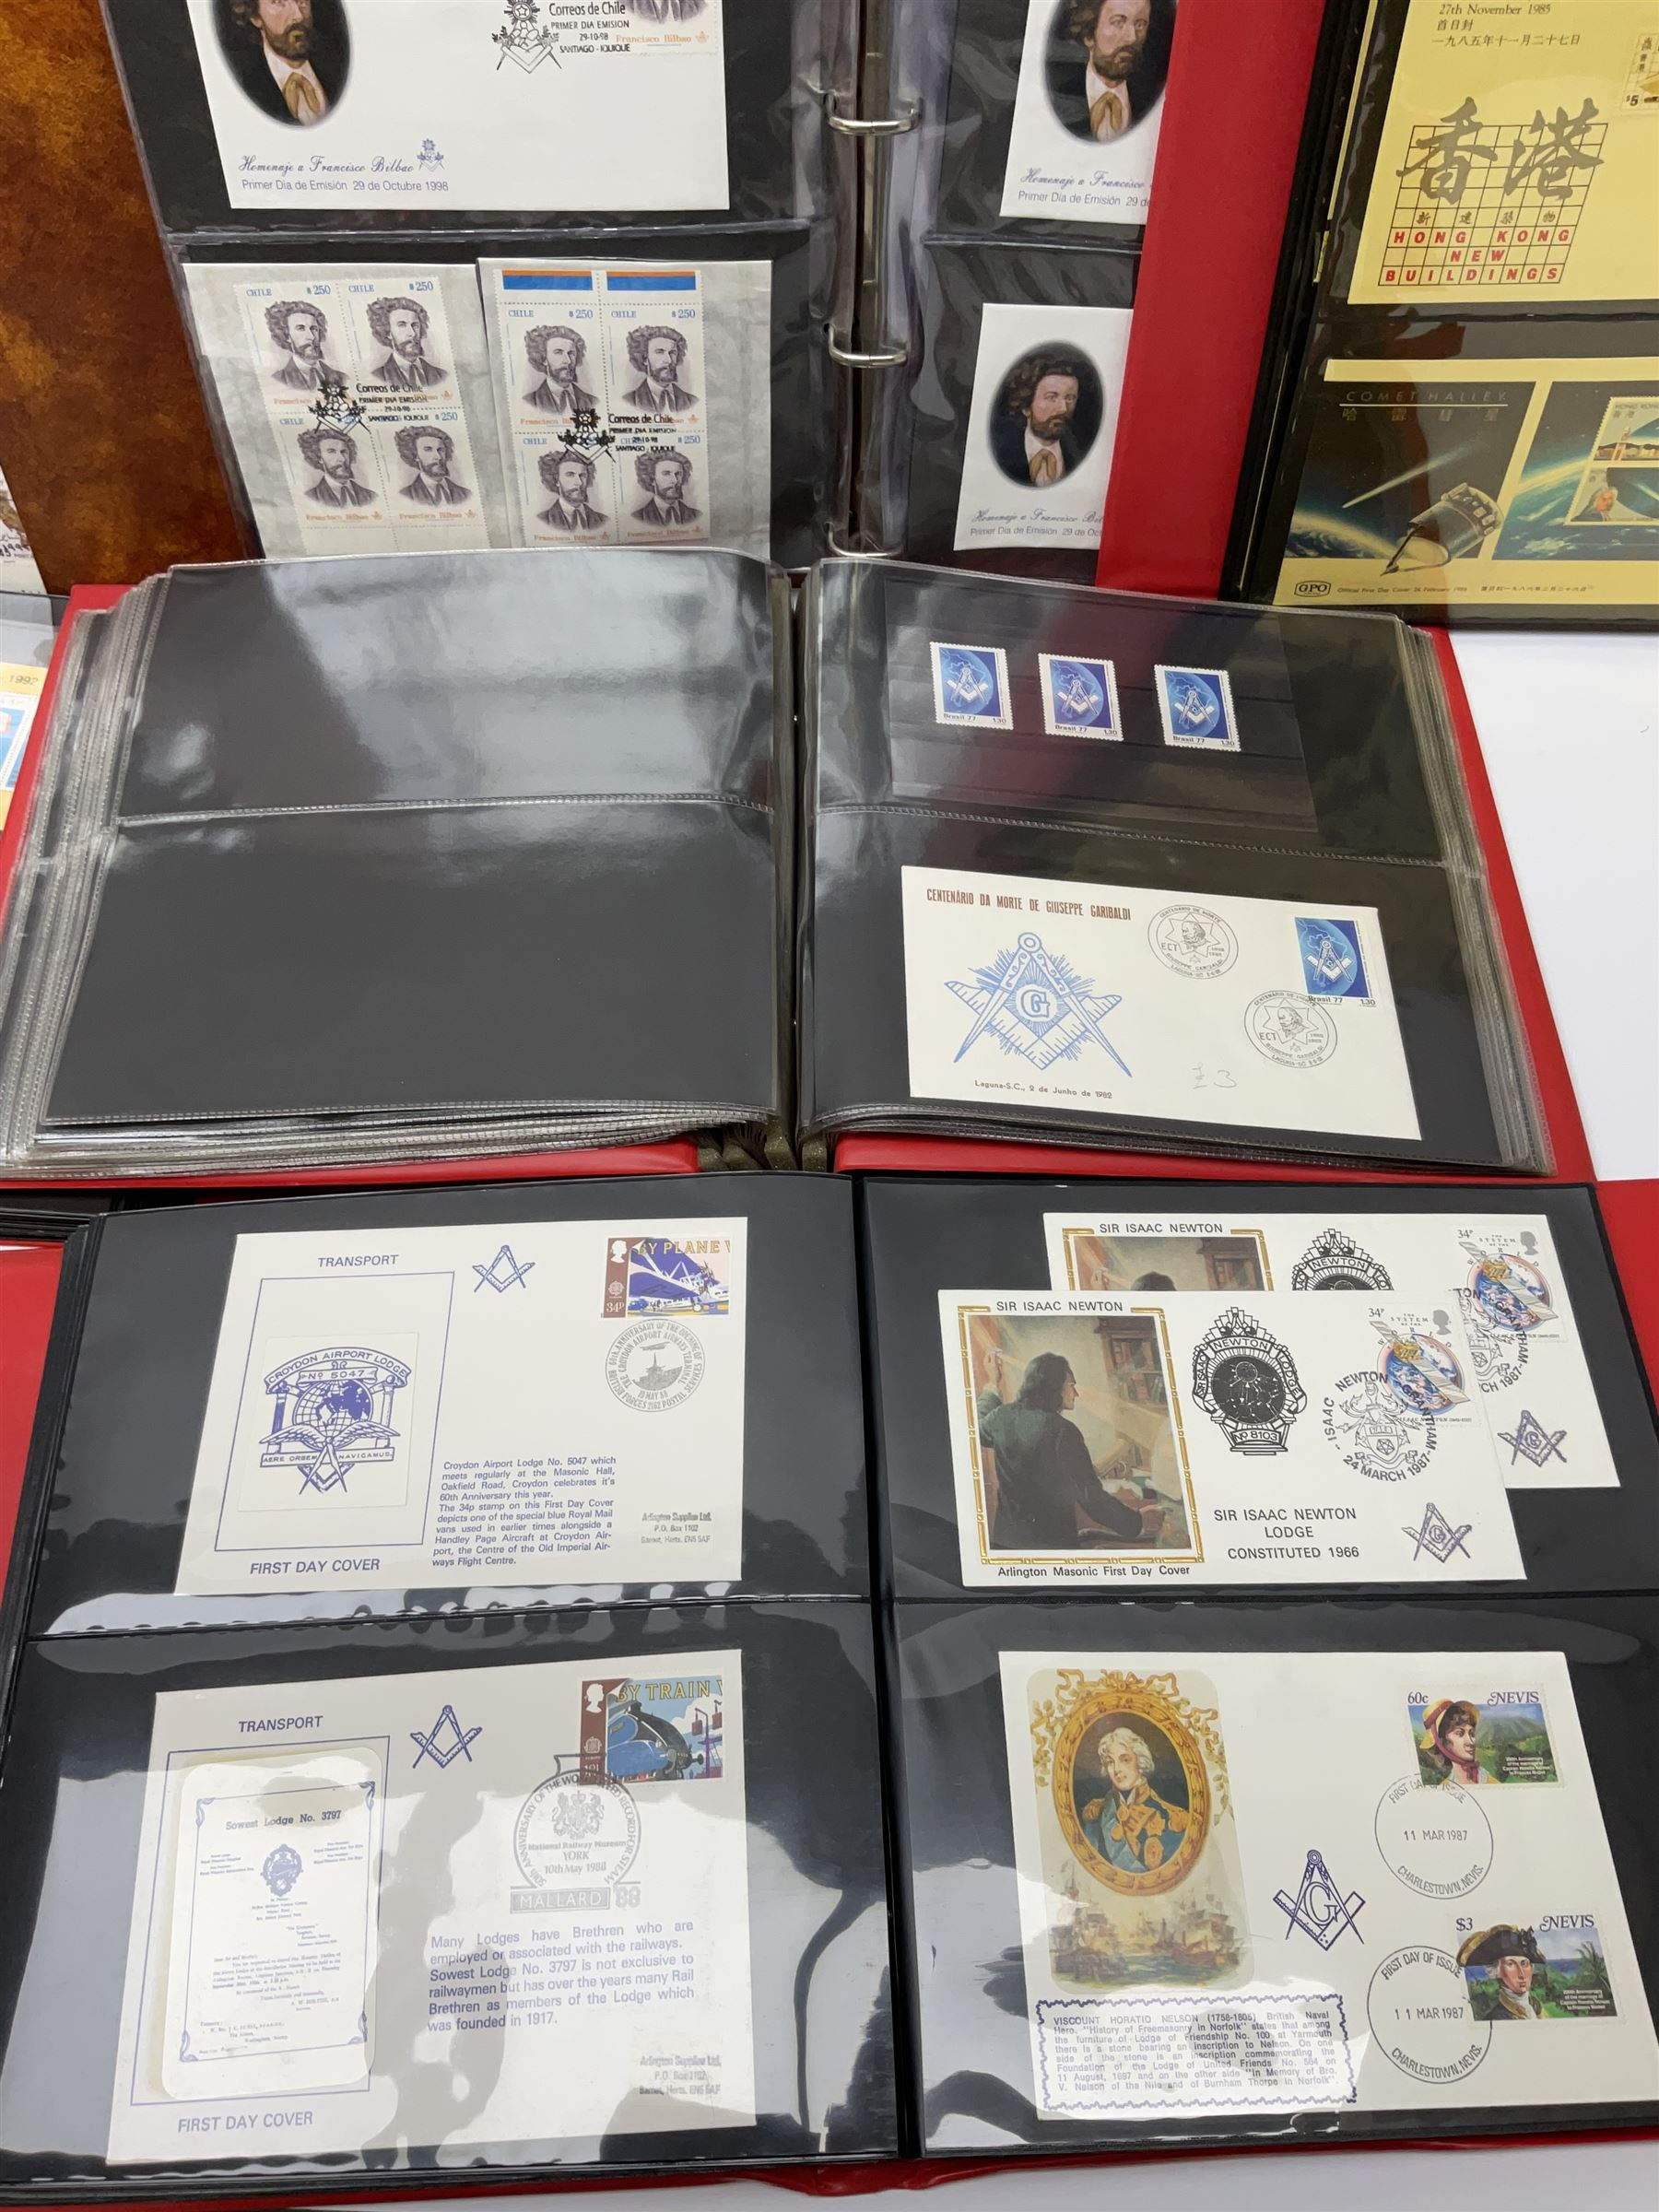 Predominantly Masonic interest first day covers and stamps including 'Royal Engineers Lodge No.2599' - Image 5 of 7